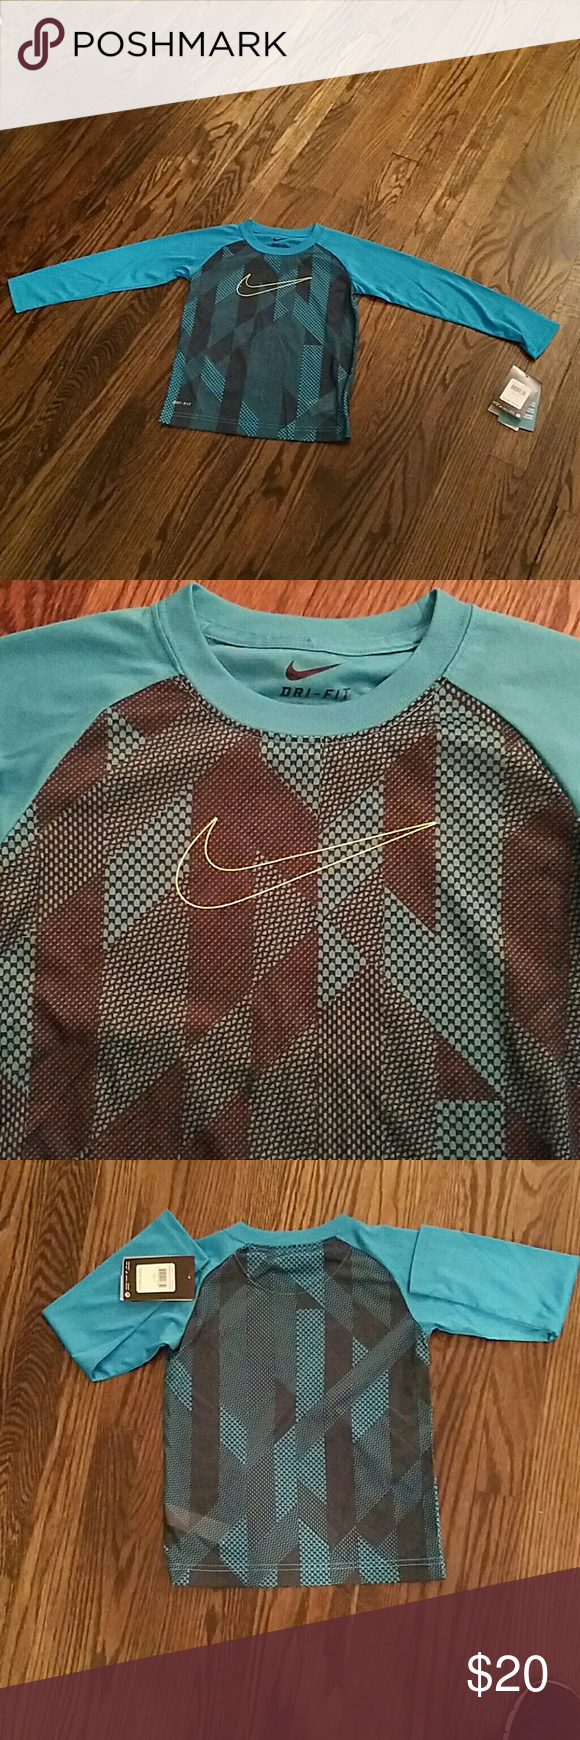 NIKE DRI-FIT Long sleeve Dri-Fit shirt pulls away sweat to help keep you dry and comfortable. Stay cool. Turquoise and black. Nike Shirts & Tops Tees - Long Sleeve